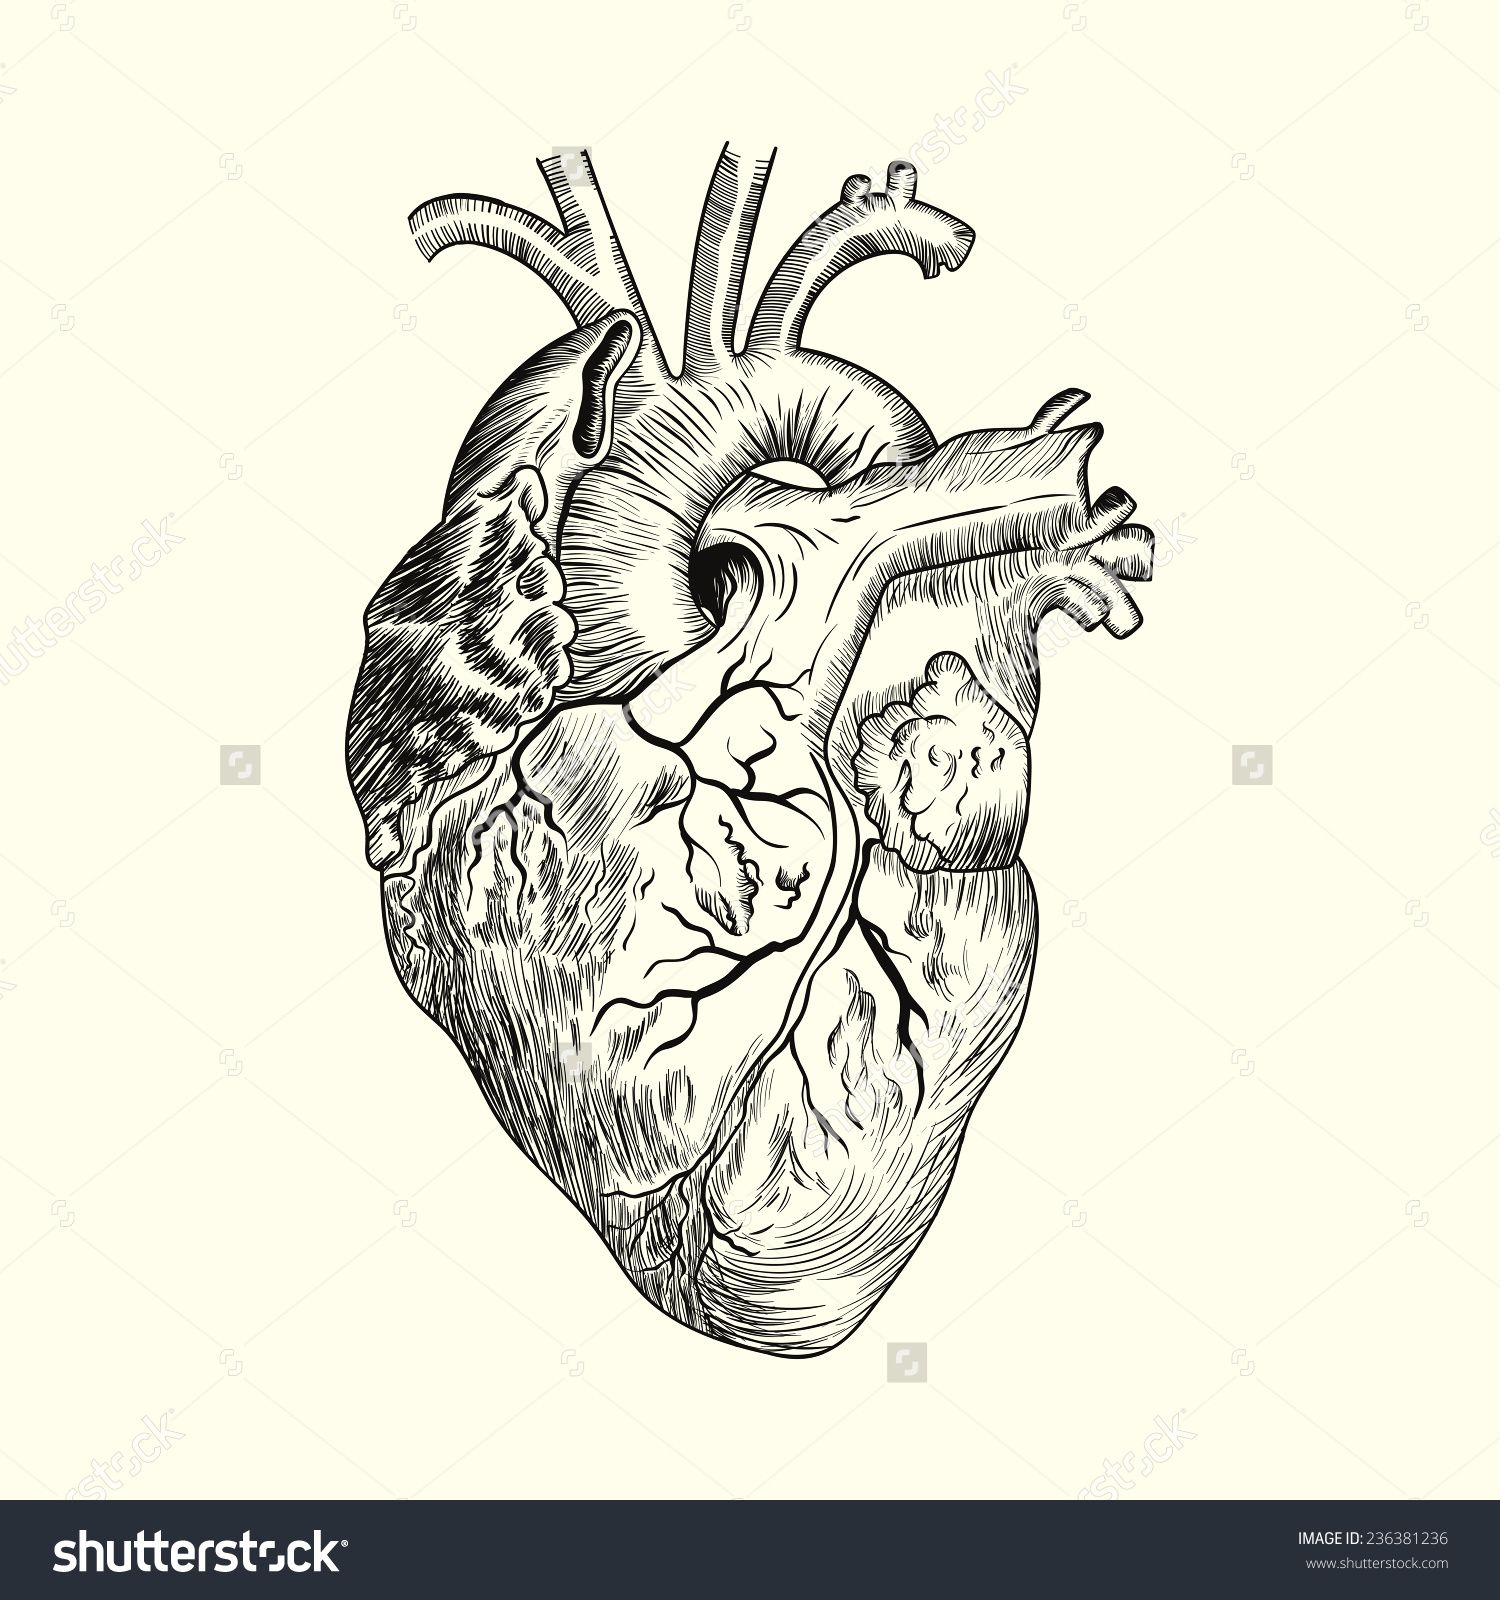 Anatomical Heart Drawing Stock Photos, Images, & Pictures